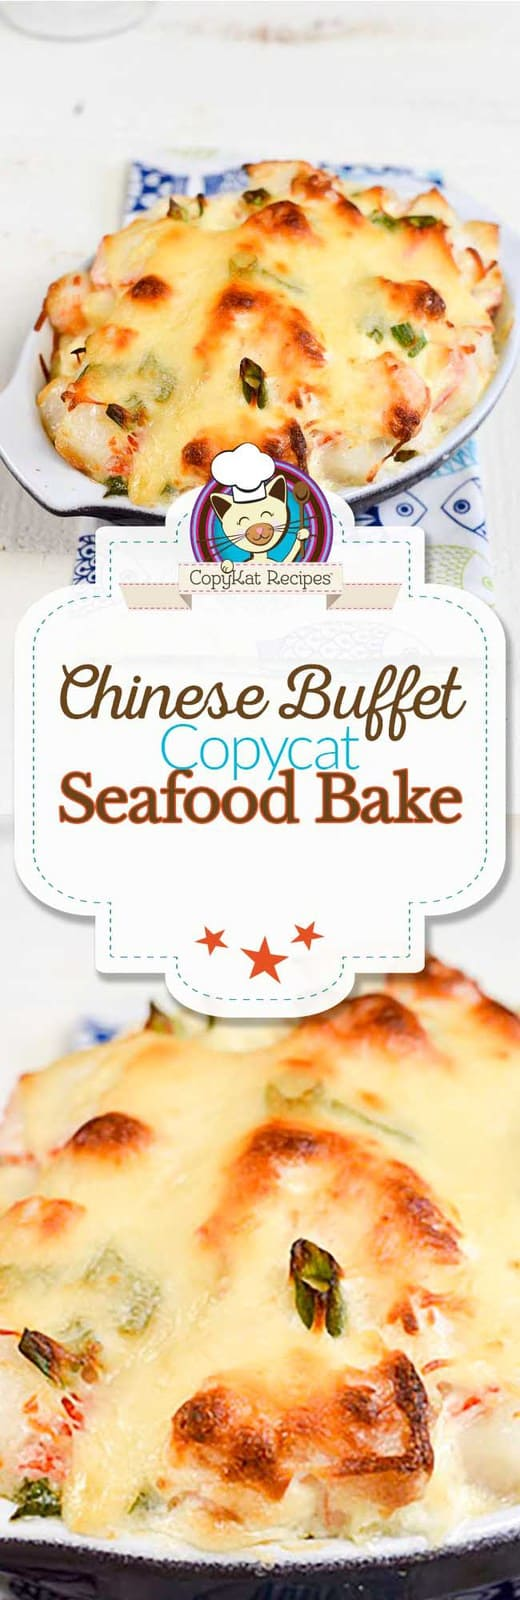 You can recreate this Chinese Buffet Seafood Bake at home with this copycat recipe.